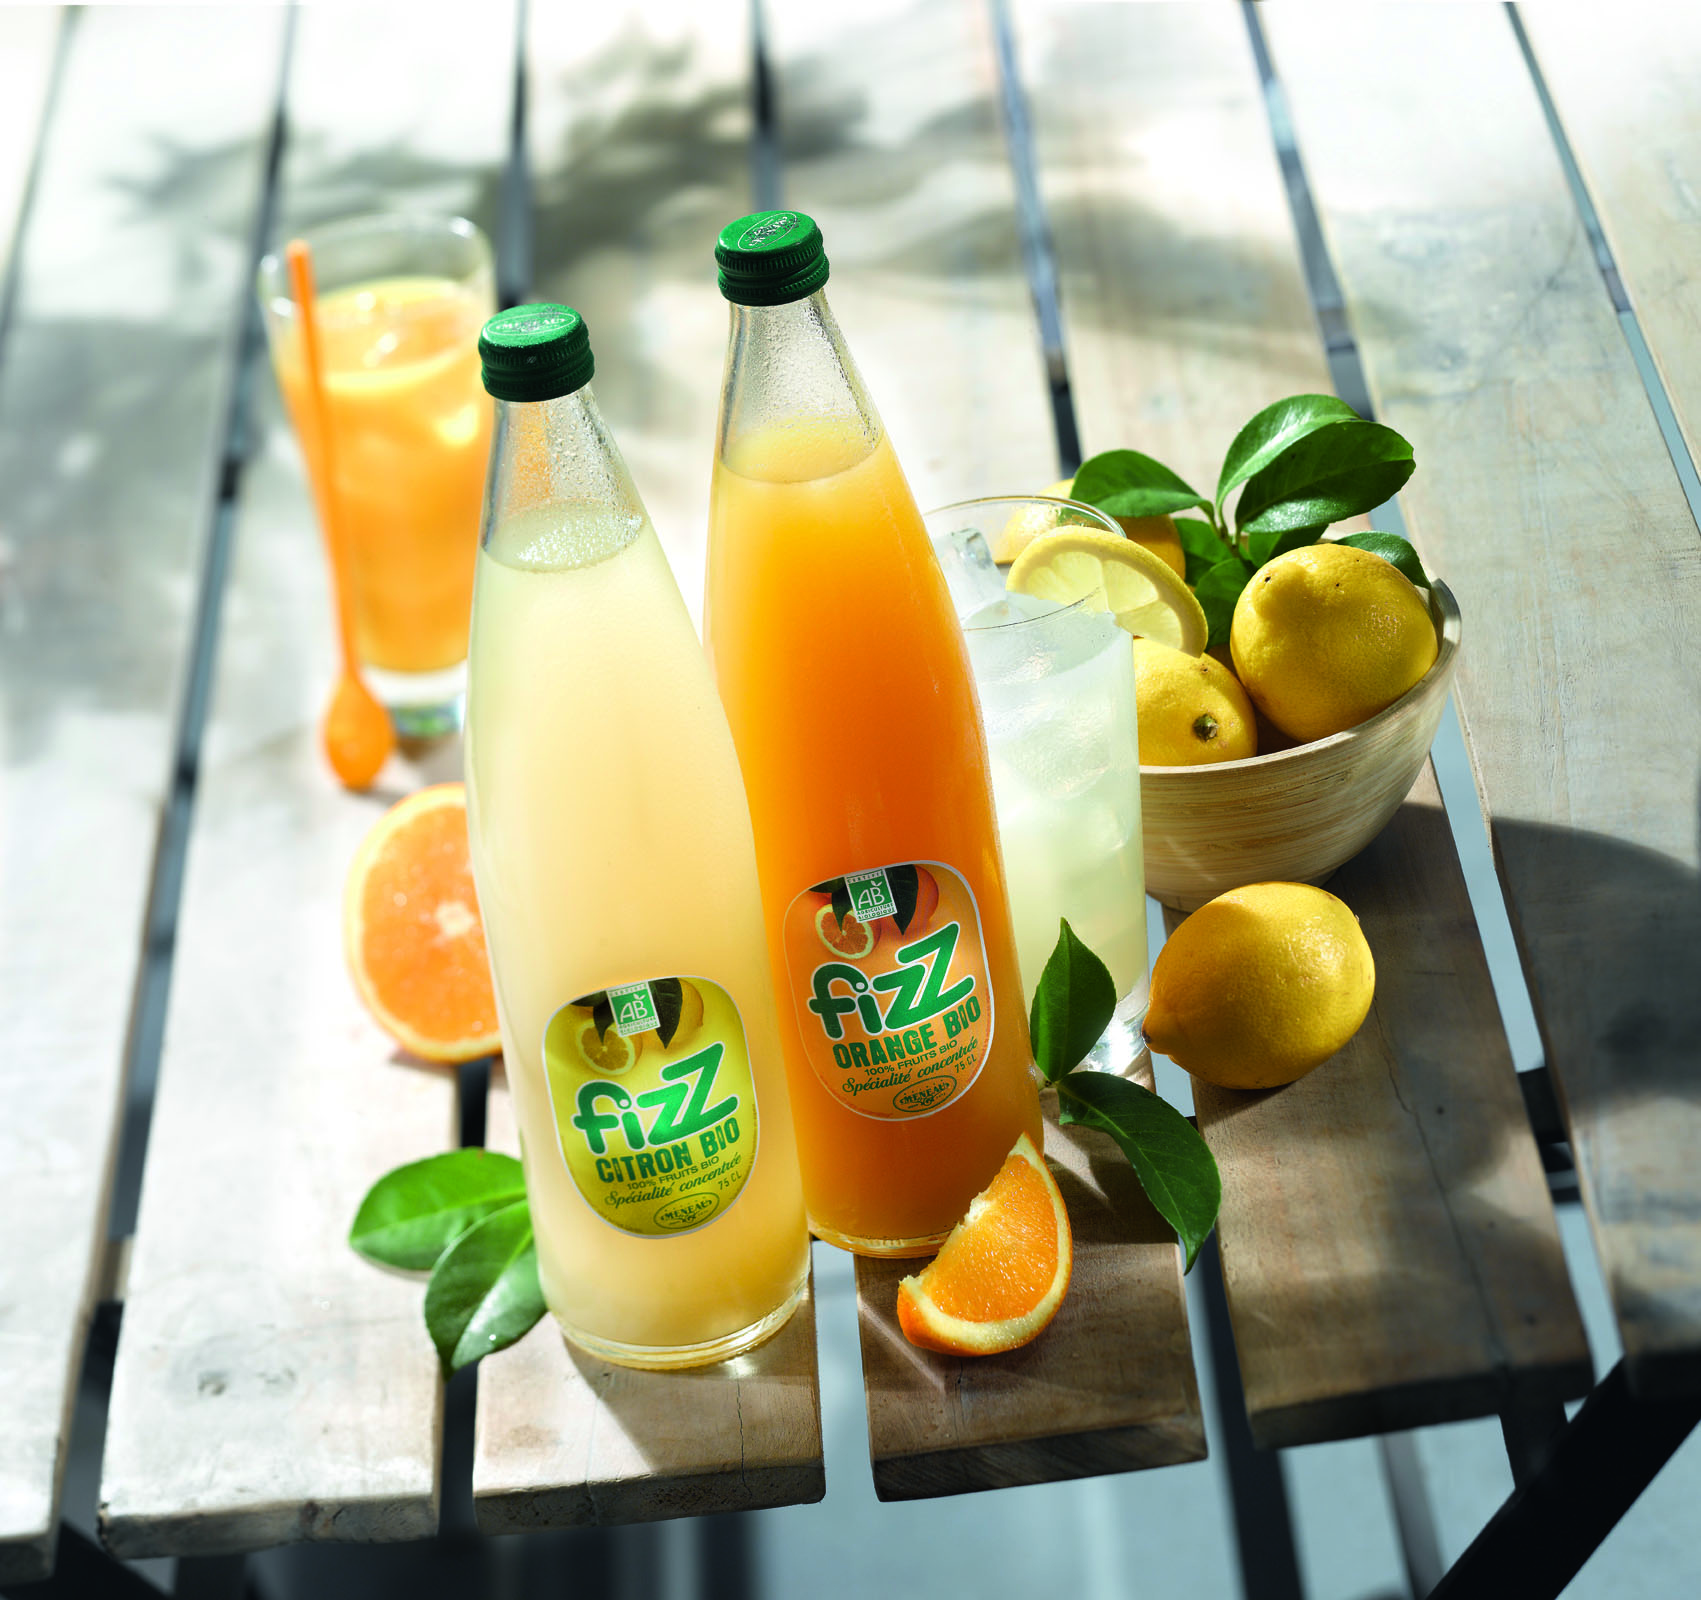 Fizz citron et Fizz orange bio